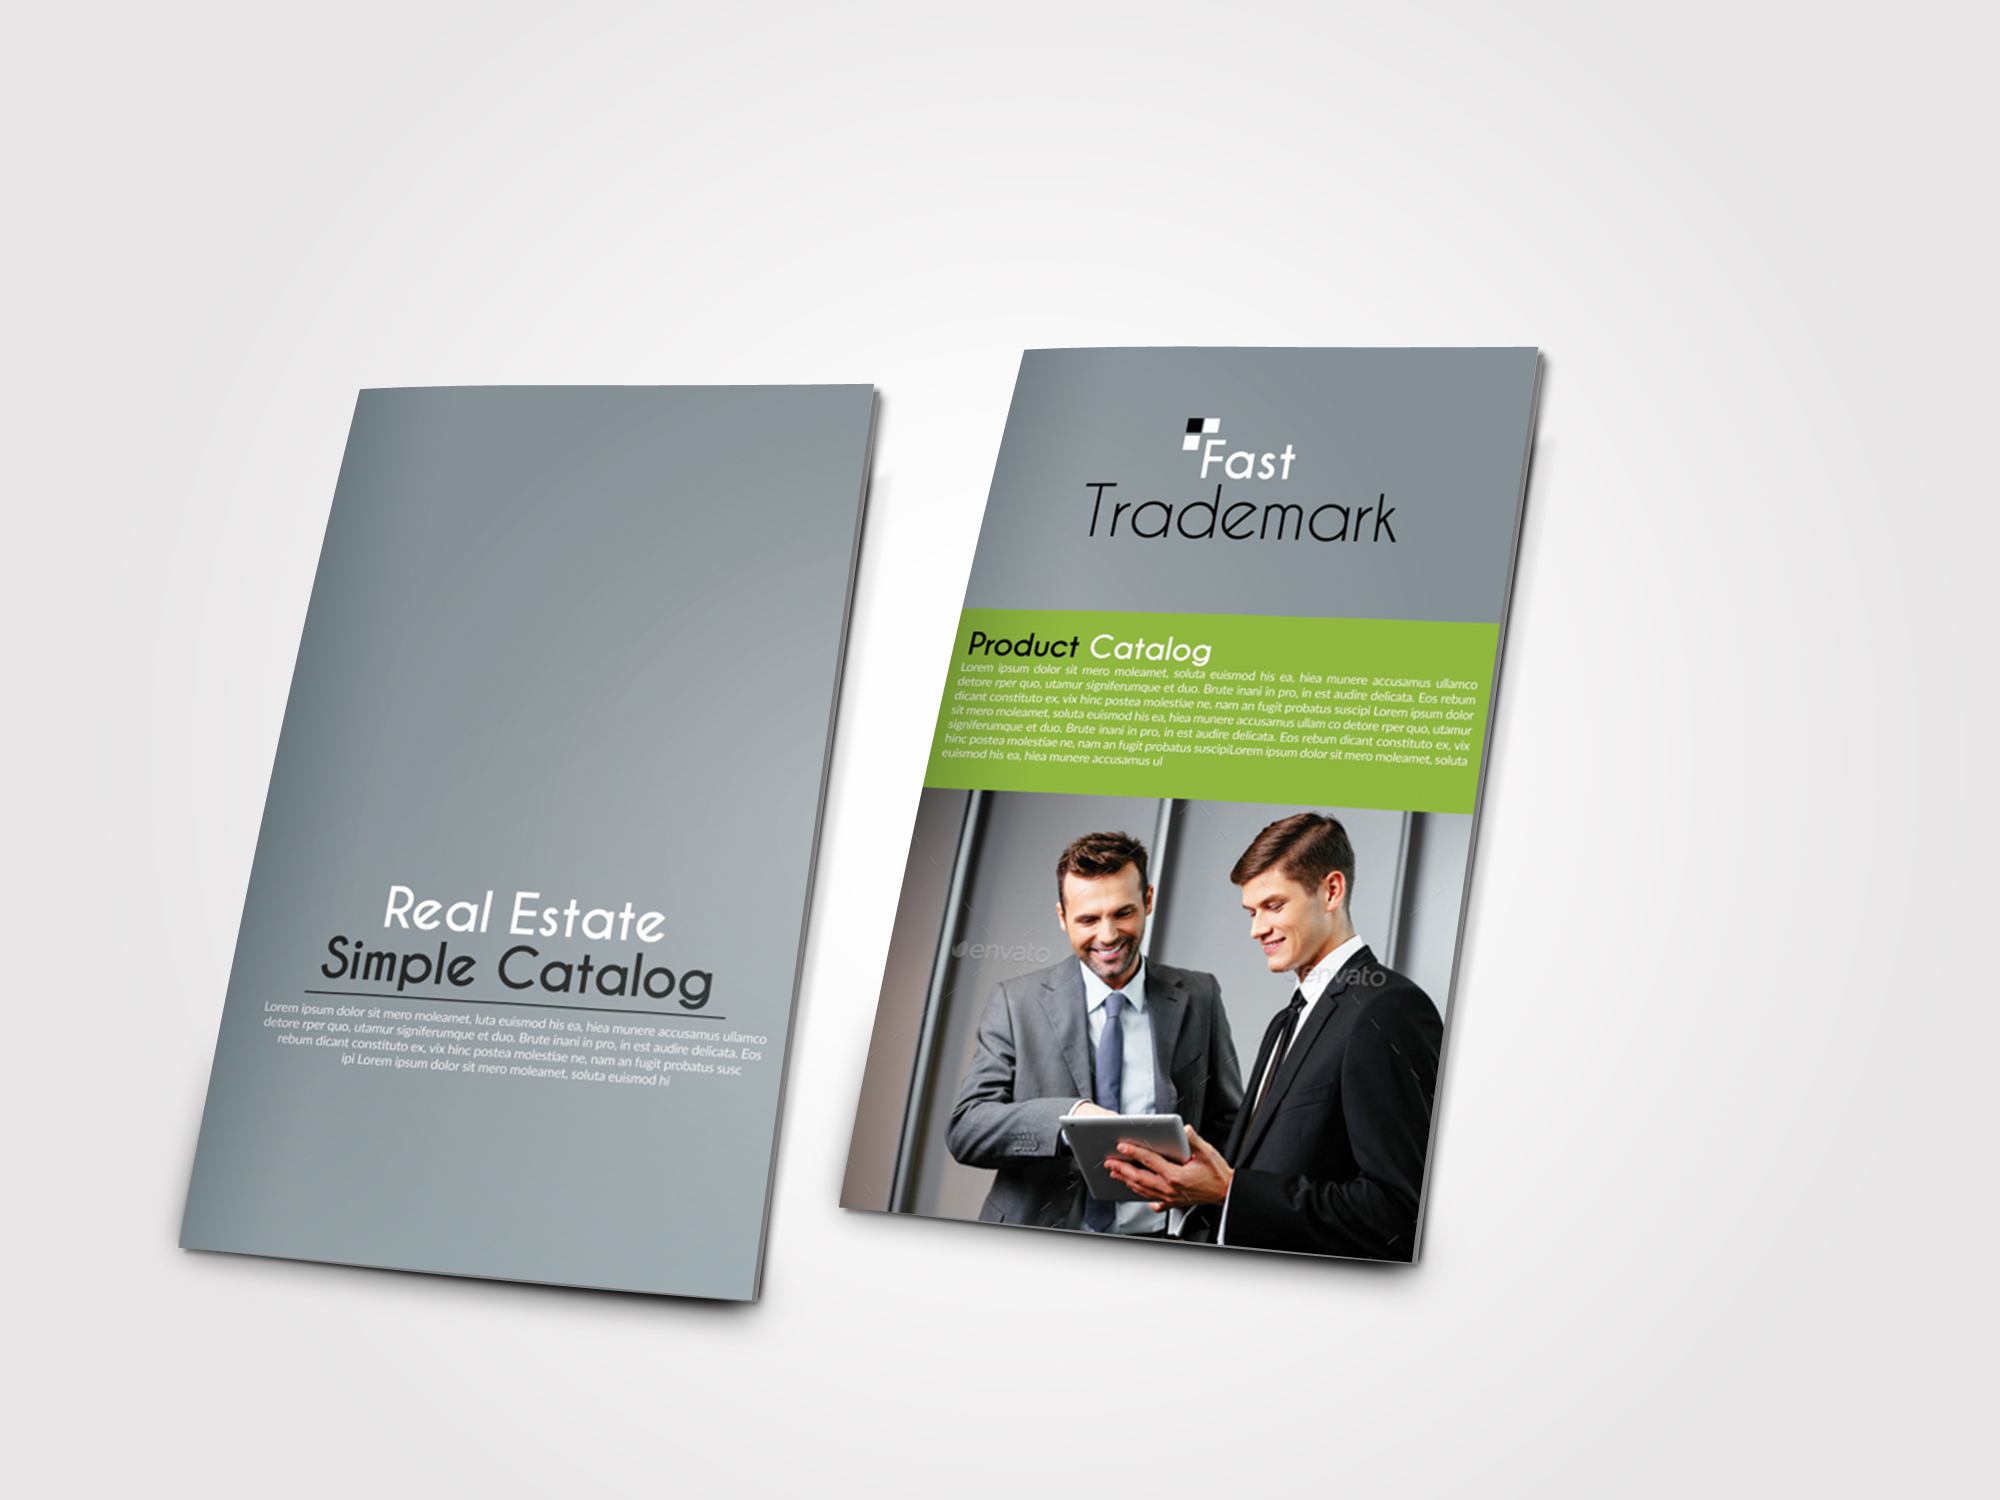 Business Innovation Product Bifold Brochure example image 4